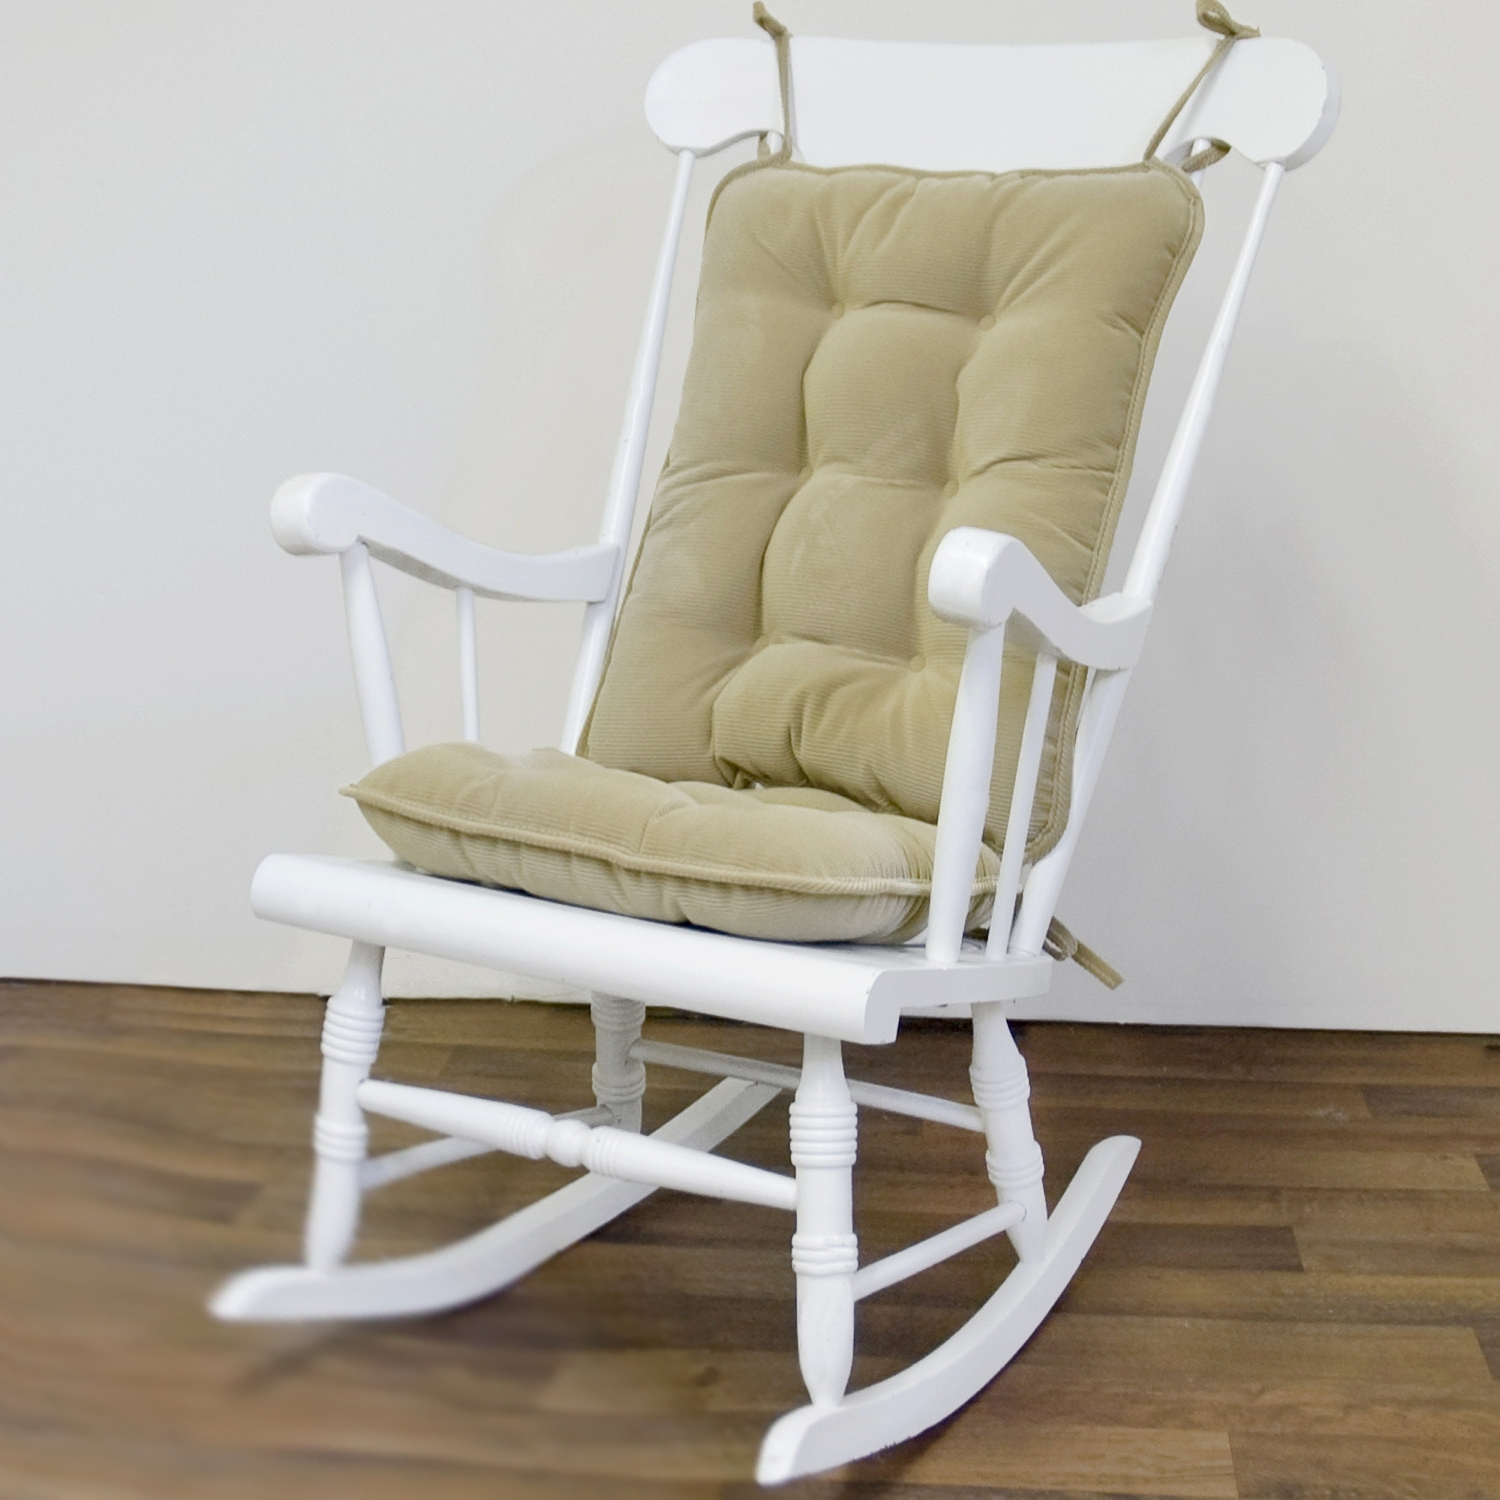 Widely Used Rocking Chairs With Lumbar Support Regarding Living Room Furniture : Rocking Chair Pads And Cushions Outdoor (View 14 of 20)